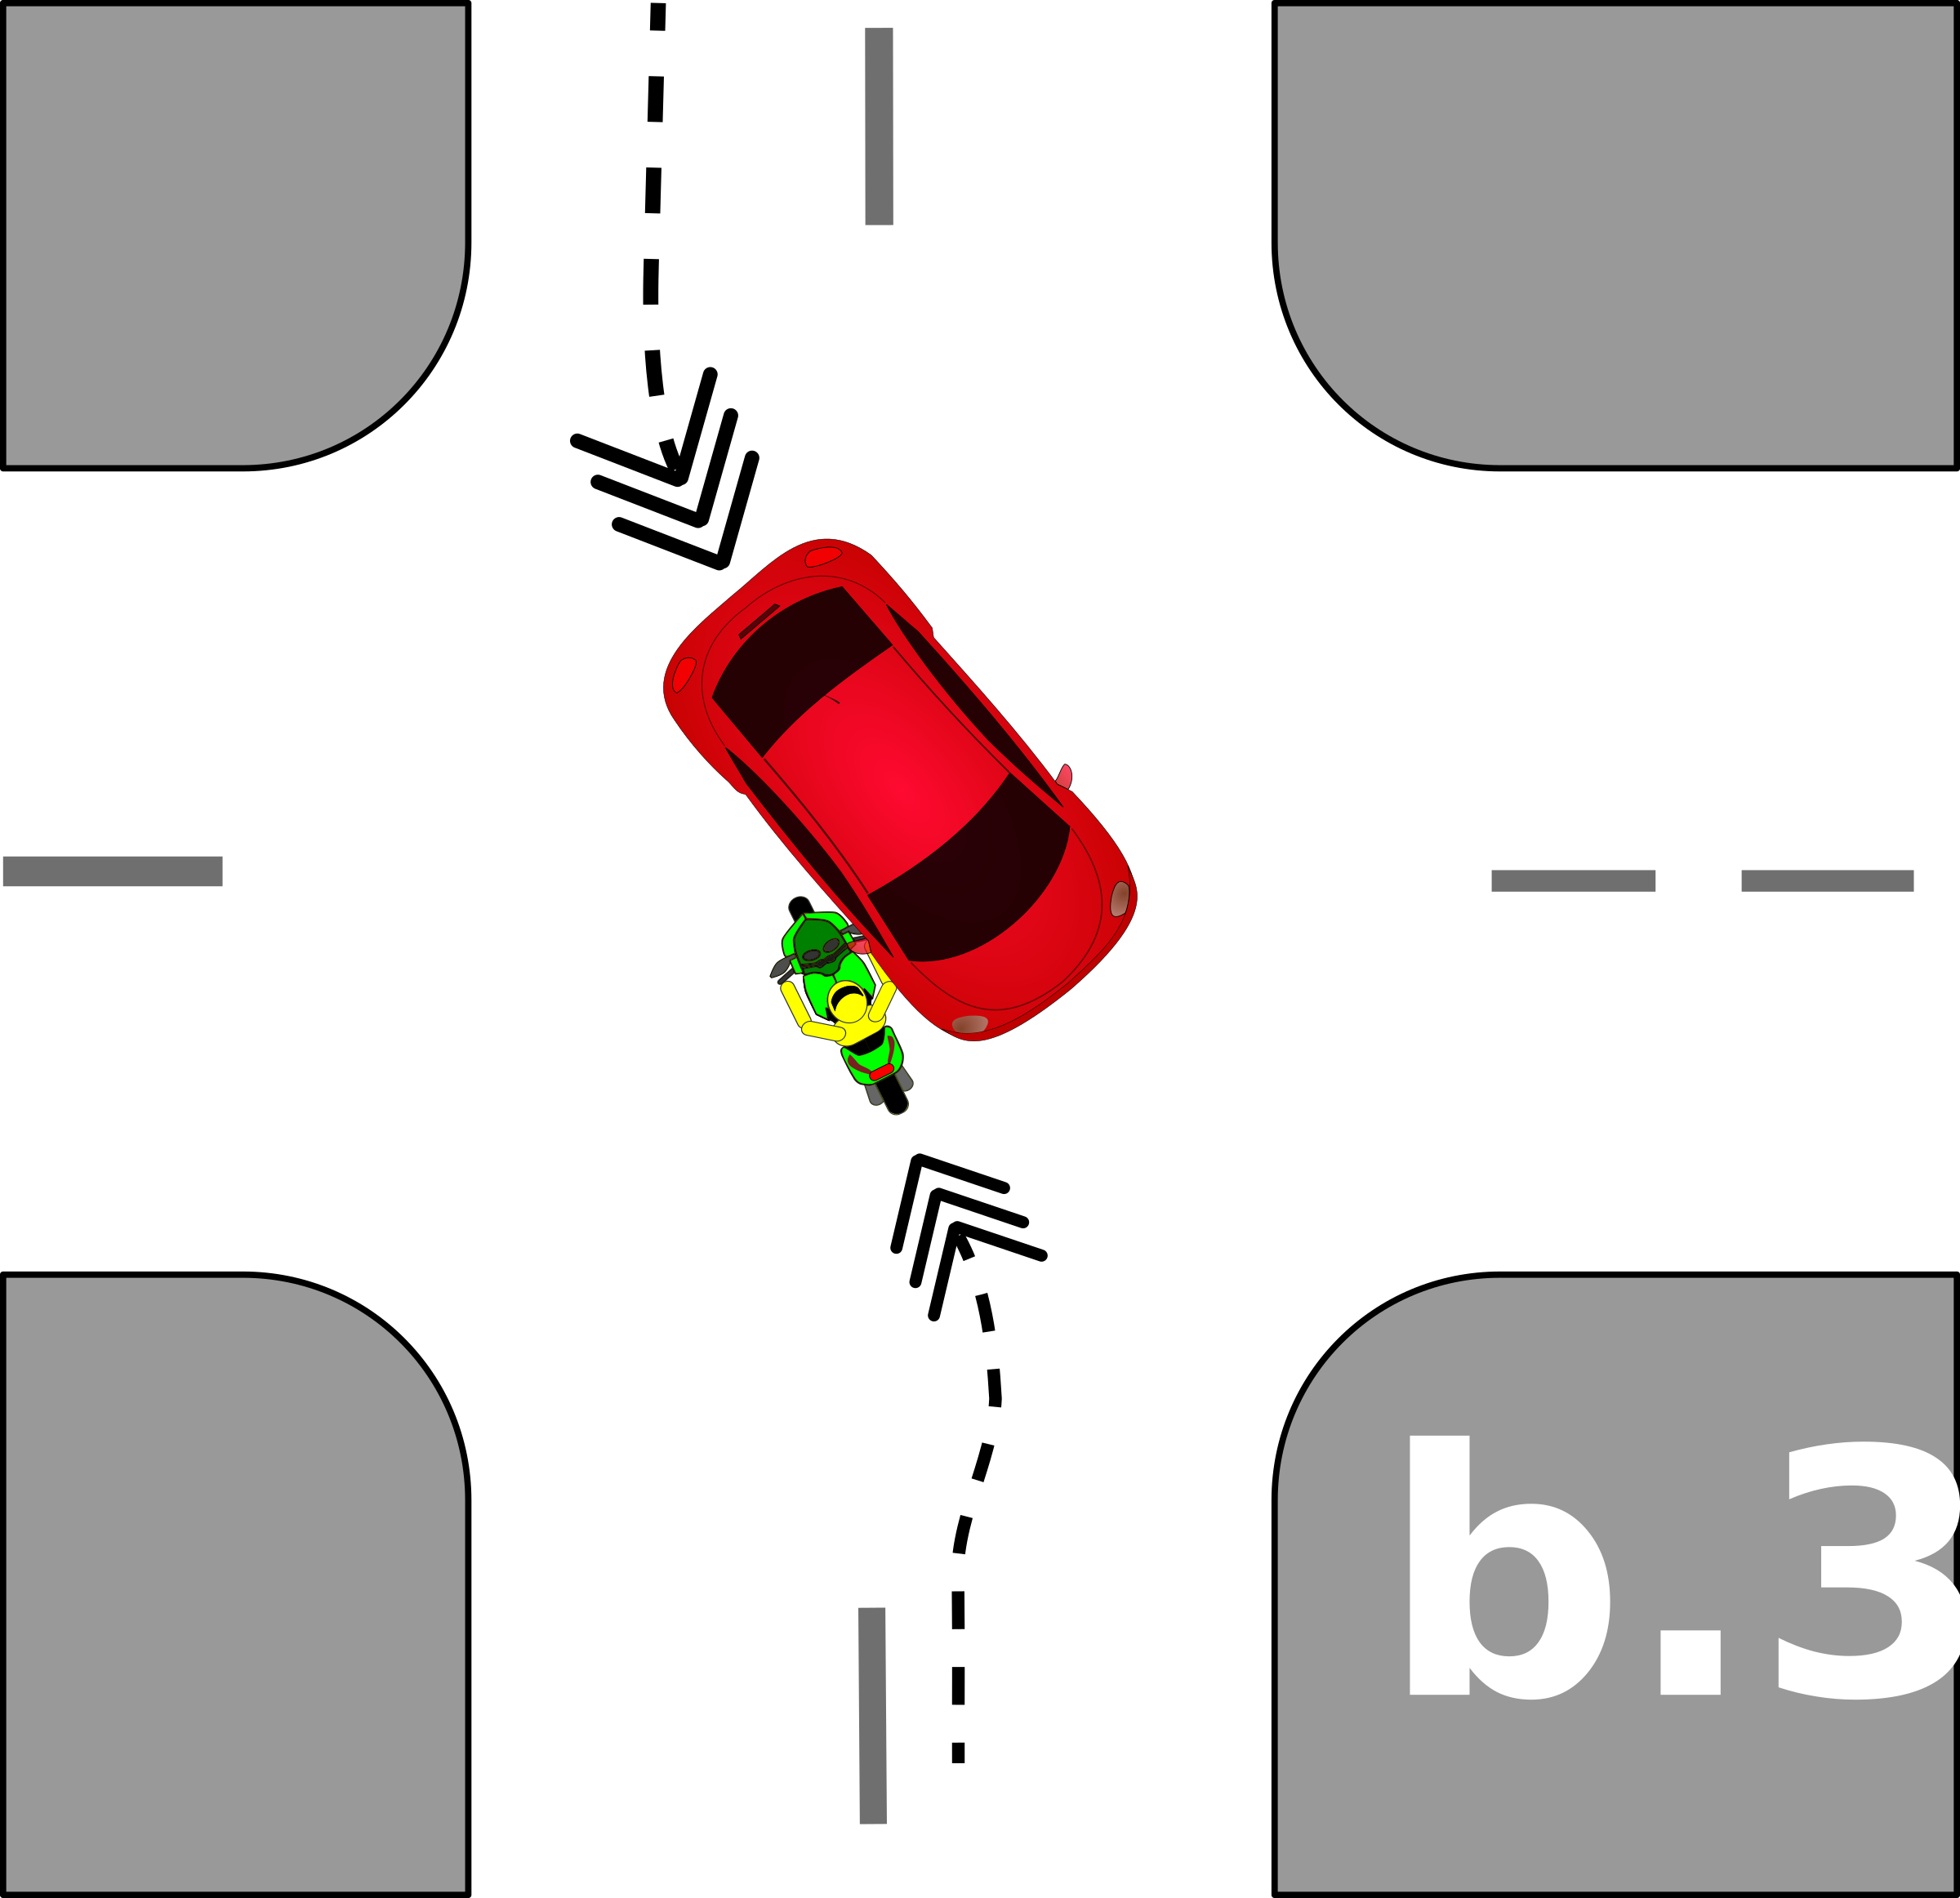 traffic accident pictograms b.3 by Gusta